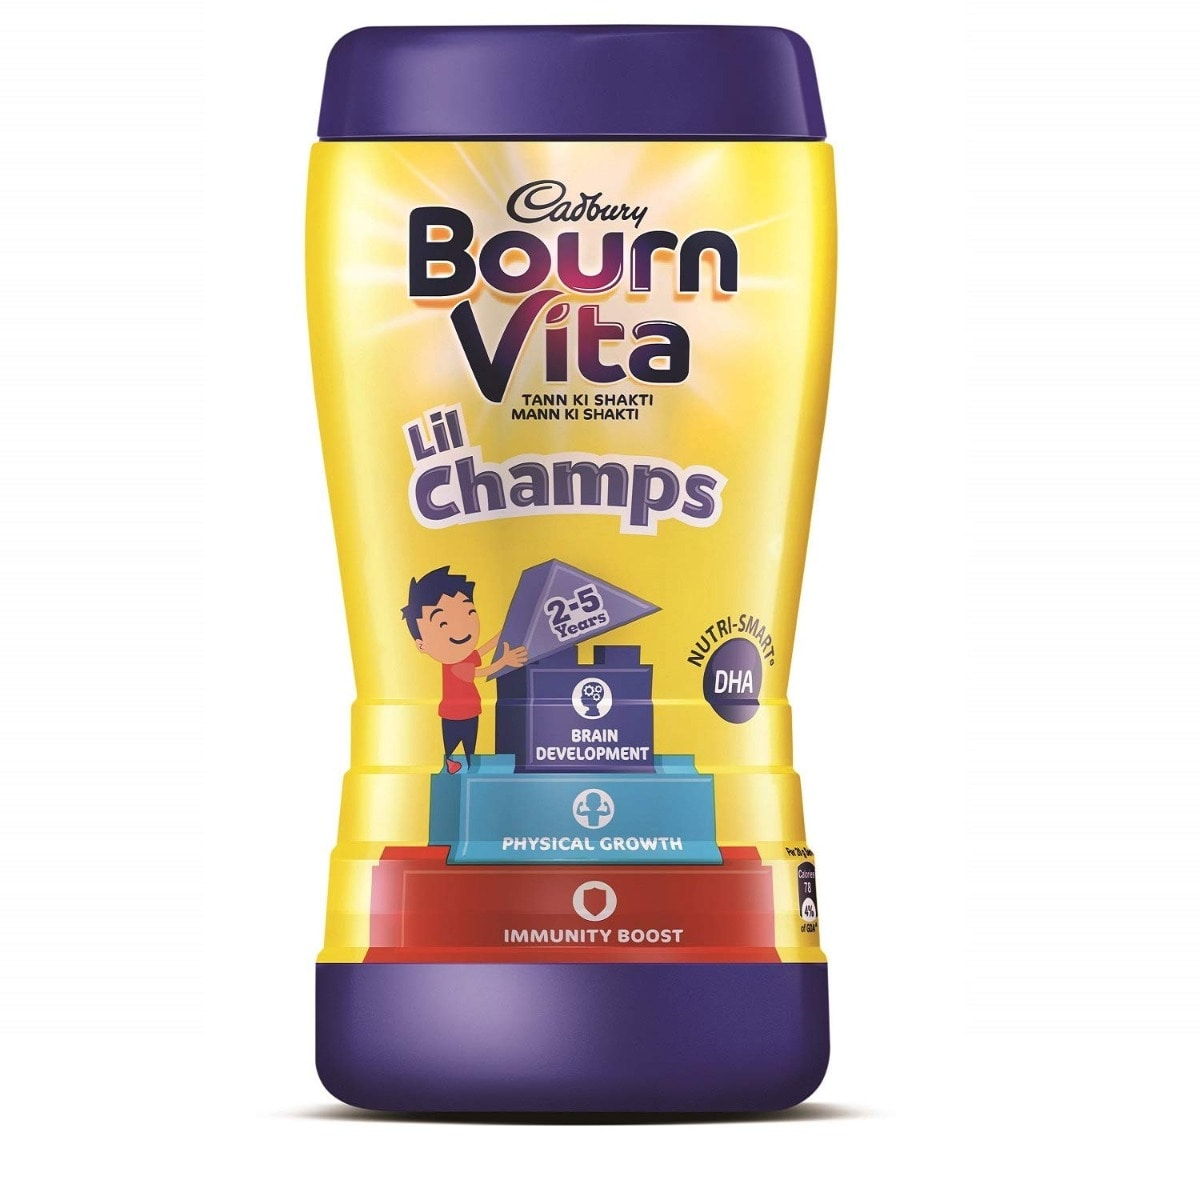 Bournvita Lil Champs Nutrition Drink 2 to 5 Years, 500 gm Jar